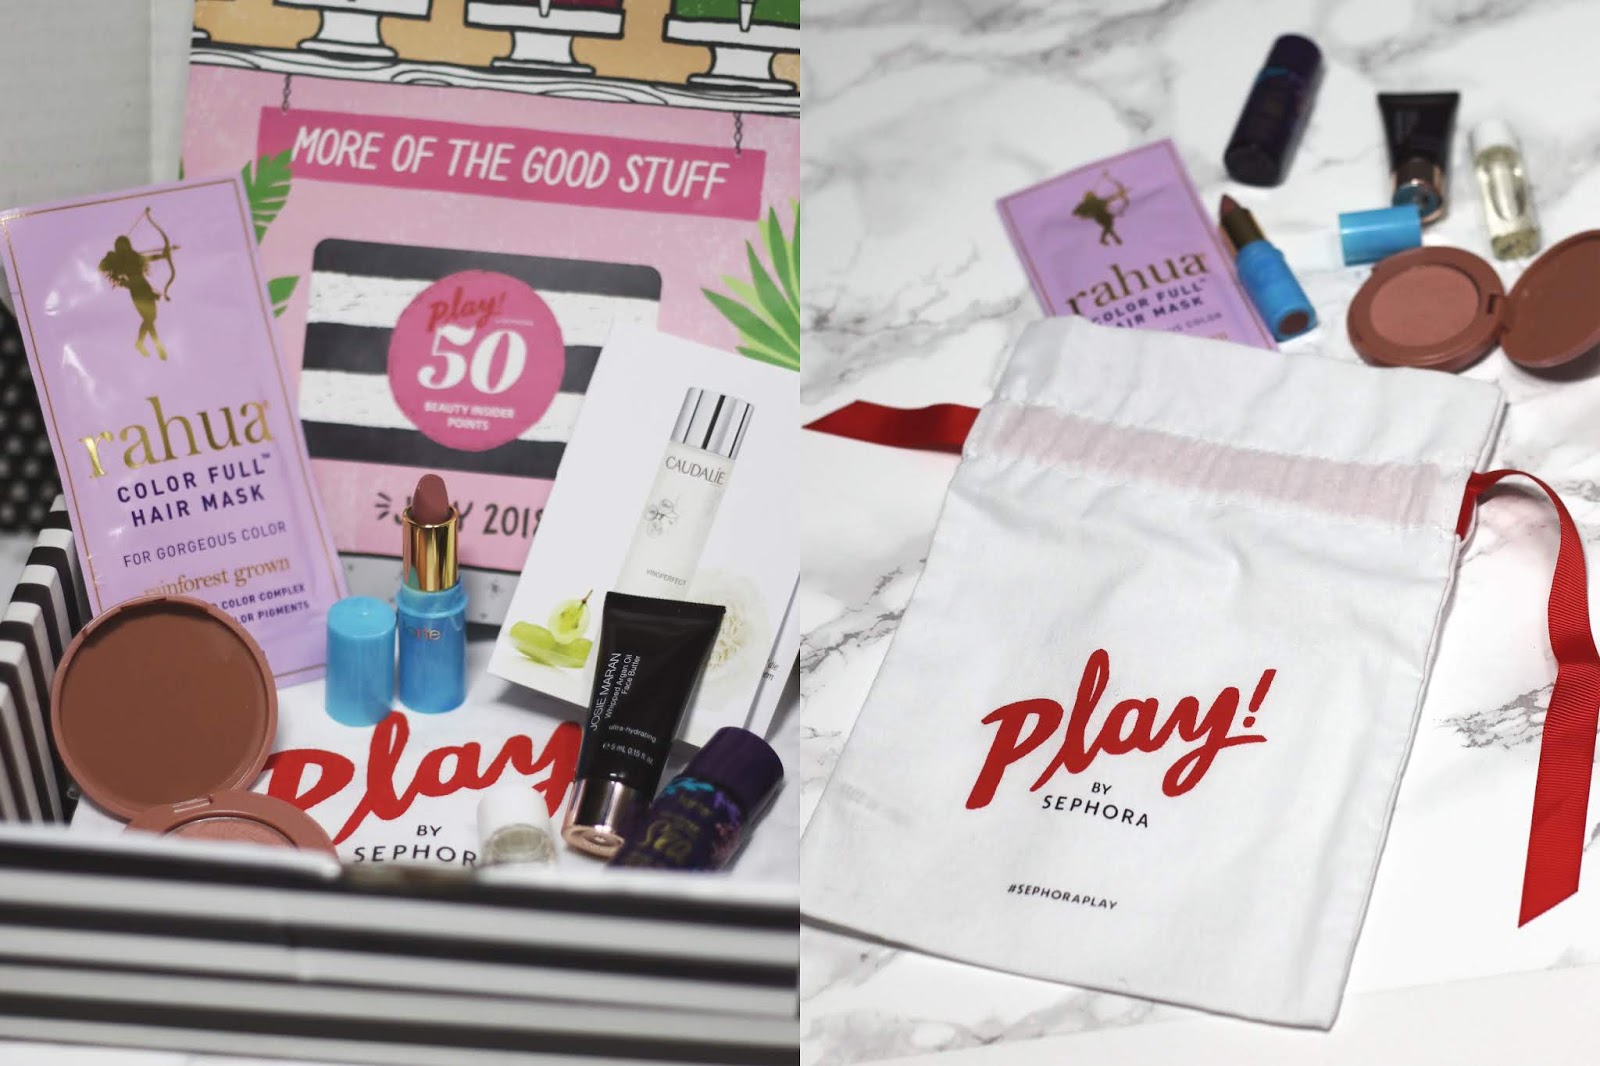 Beauty Blogger, College Blogger, Lifestyle Blogger, Sephora Play Box Review, Tarte, Caudalie, Josie Maran, Rahua